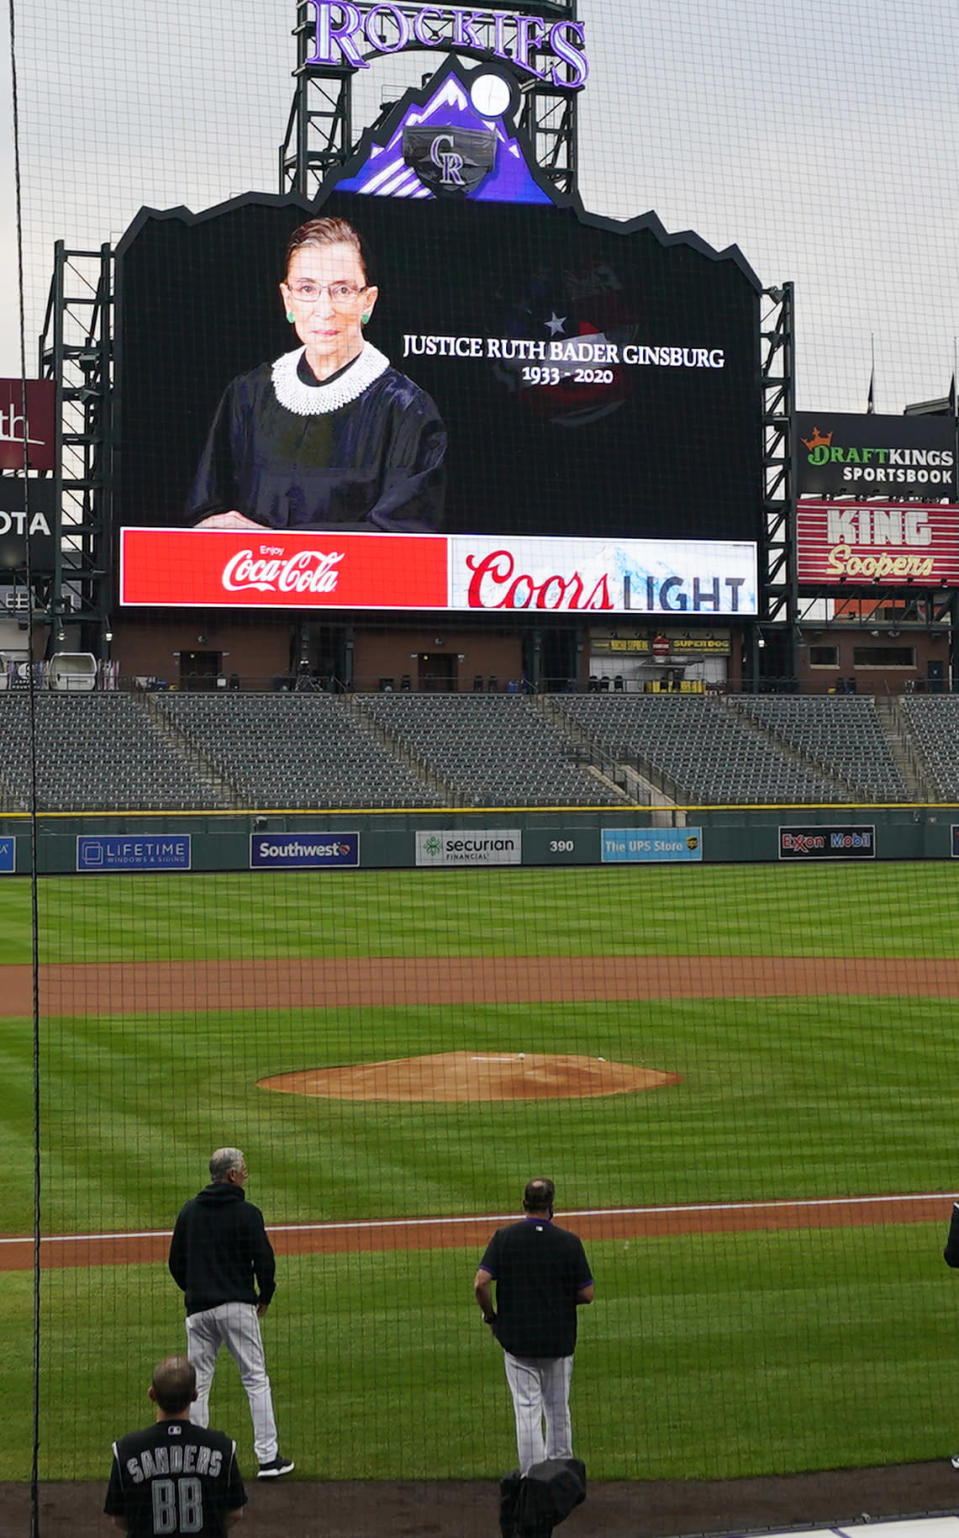 A tribute to the late Supreme Court Justice Ruth Bader Ginsburg is displayed on the scoreboard before a baseball game between the Los Angeles Dodgers and the Colorado Rockies on Saturday, Sept. 19, 2020, in Denver. (AP Photo/David Zalubowski)